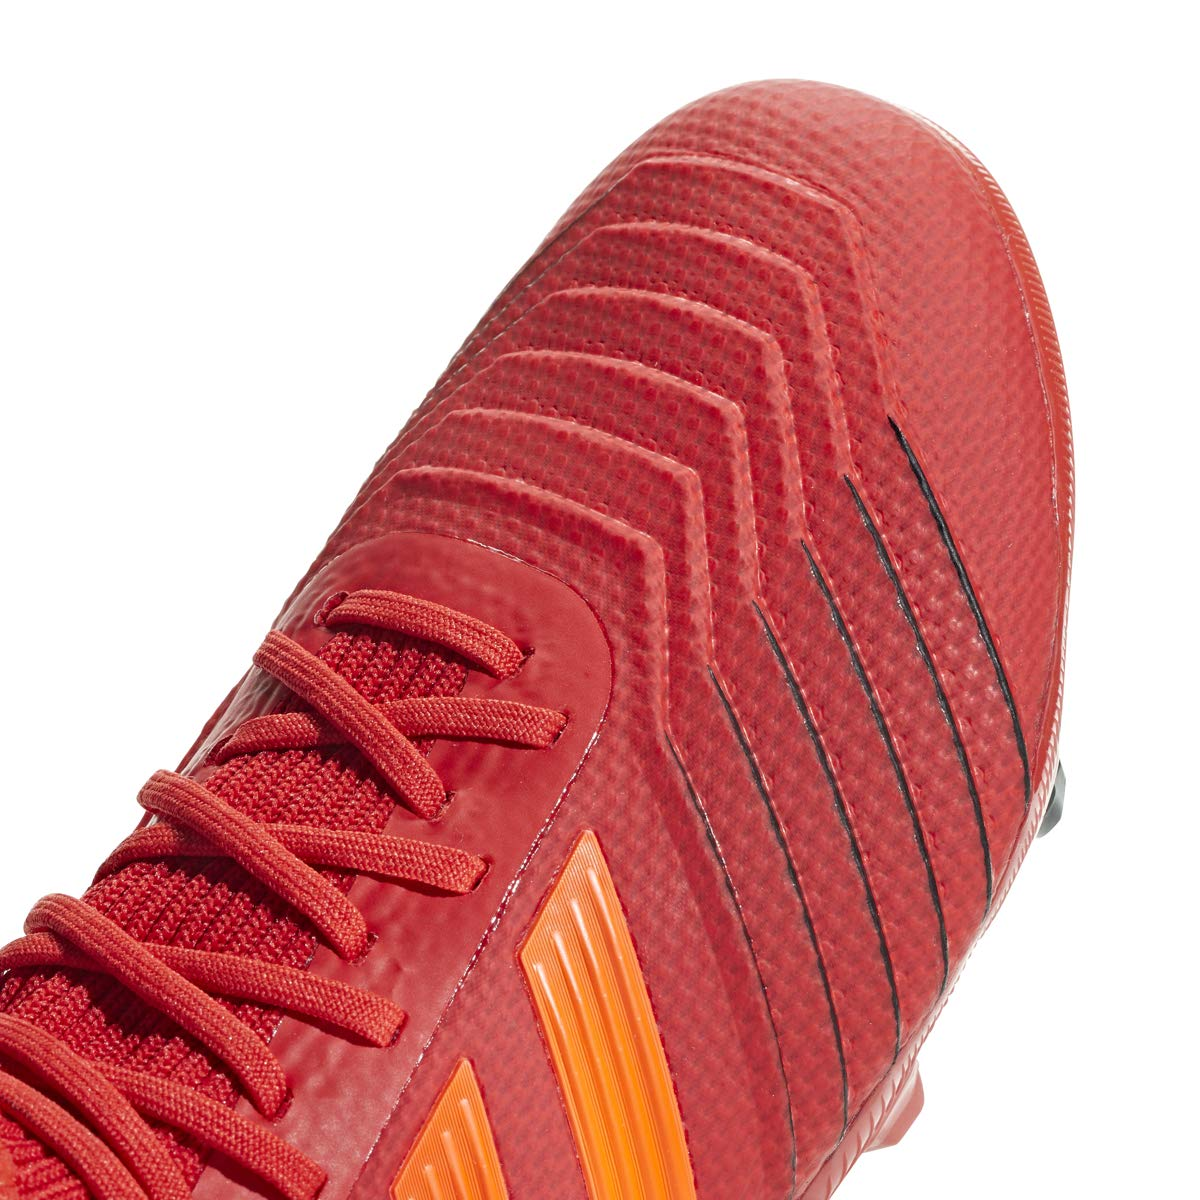 adidas Predator 19.1 FG Cleat Kid's Soccer, 4.0 D(M) US, Action Red-Solar Red-Black by adidas (Image #1)